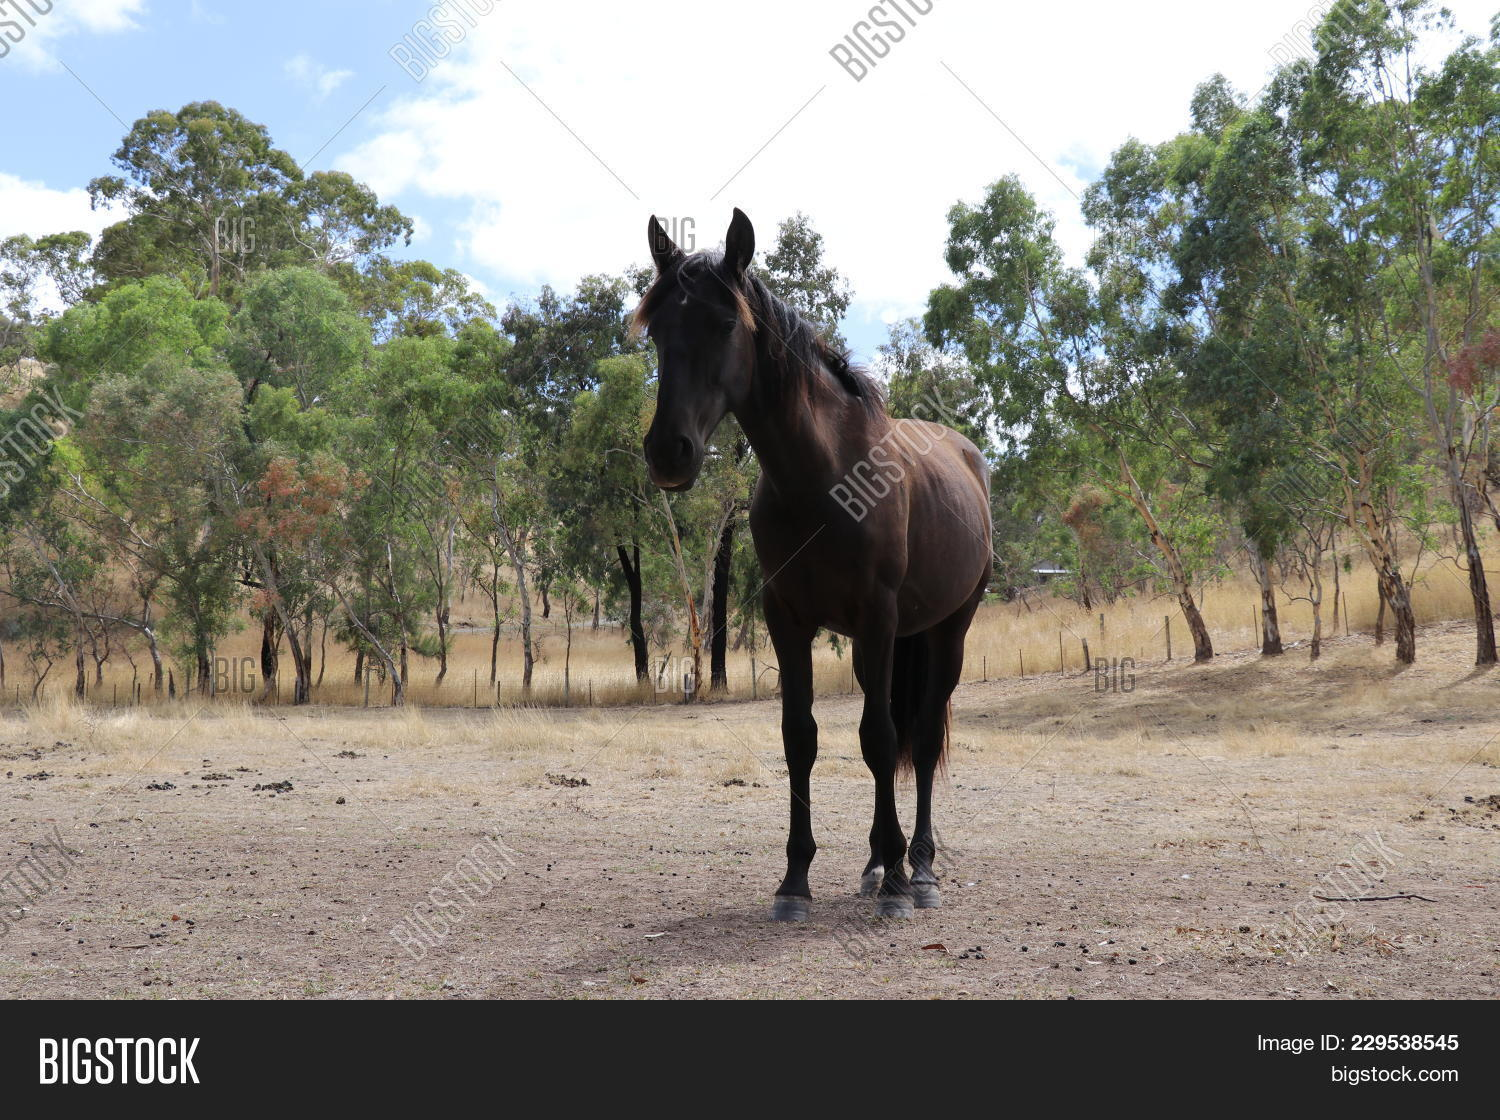 Young Black Horse Powerpoint Template Young Black Horse Powerpoint